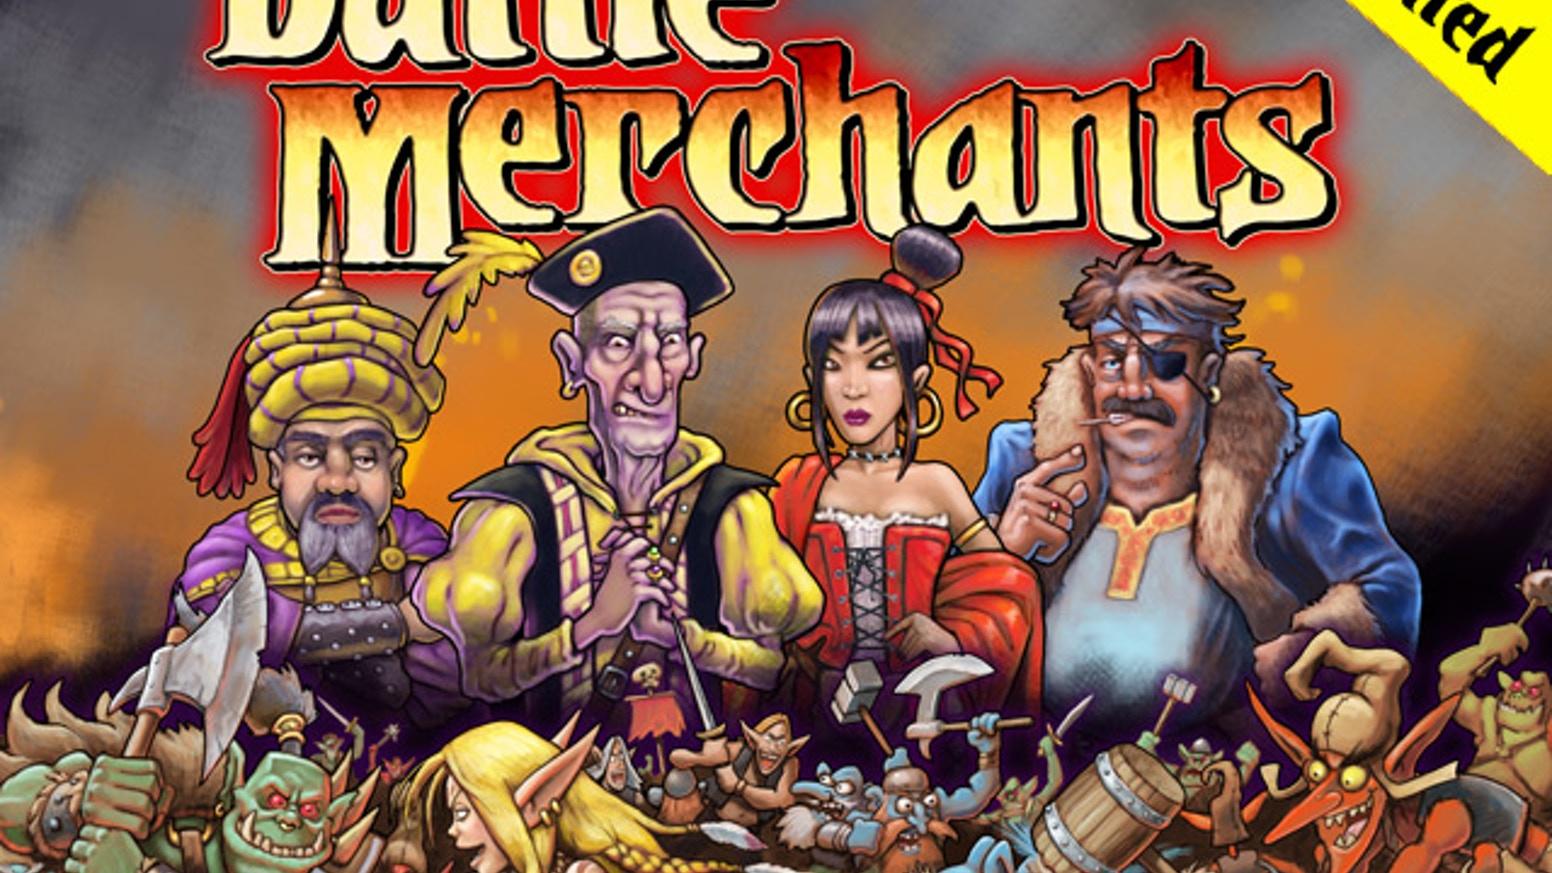 An economic game set in a fantasy land, where players manufacture  weapons and sell them to various warring races.